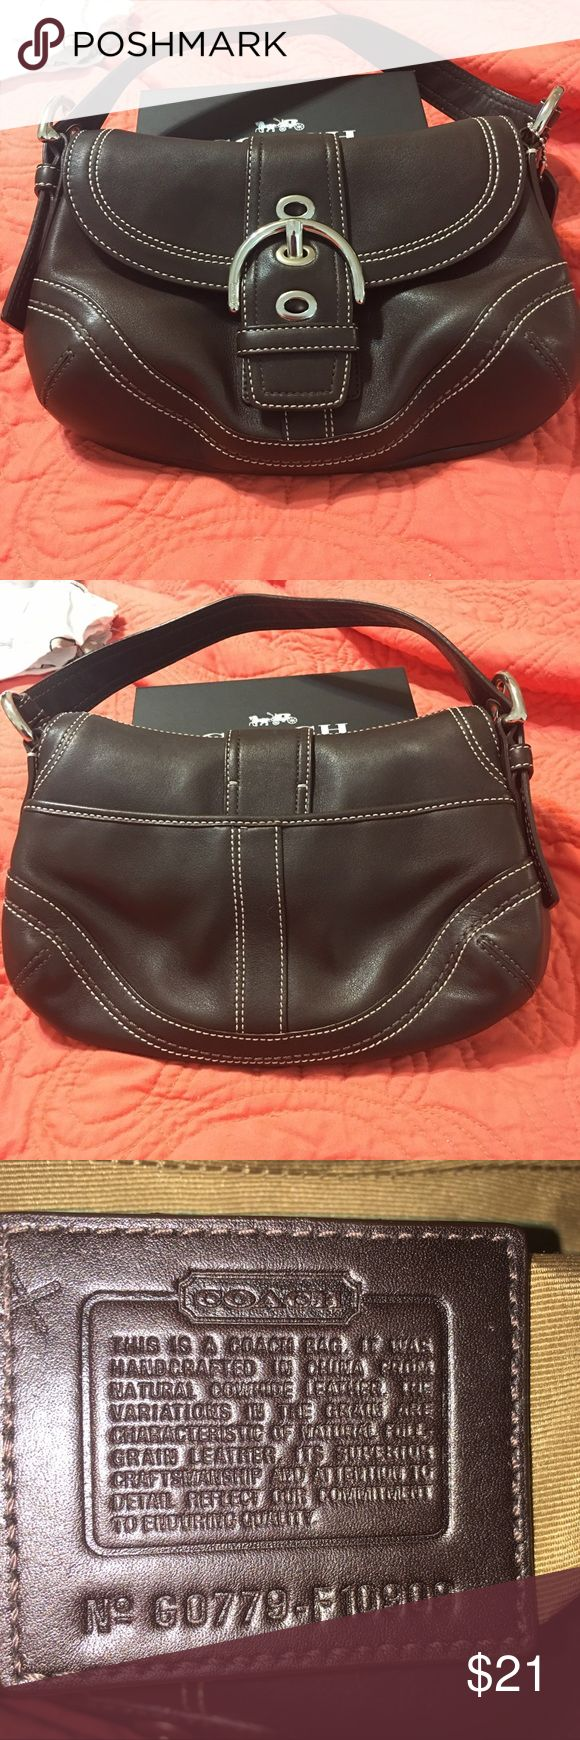 """Coach Hobo Bag - G0779-F-10909 Brand: Coach Material: Genuine Leather  Style: Hobo Hardware: Silver  Serial# G0779-F-10909 Slip pocket on back of bag Inside: 1 zipper pocket  Bag snaps closed  Bag is in excellent condition  H 7"""" x W 10"""" Drop 7"""" Coach Bags Hobos"""